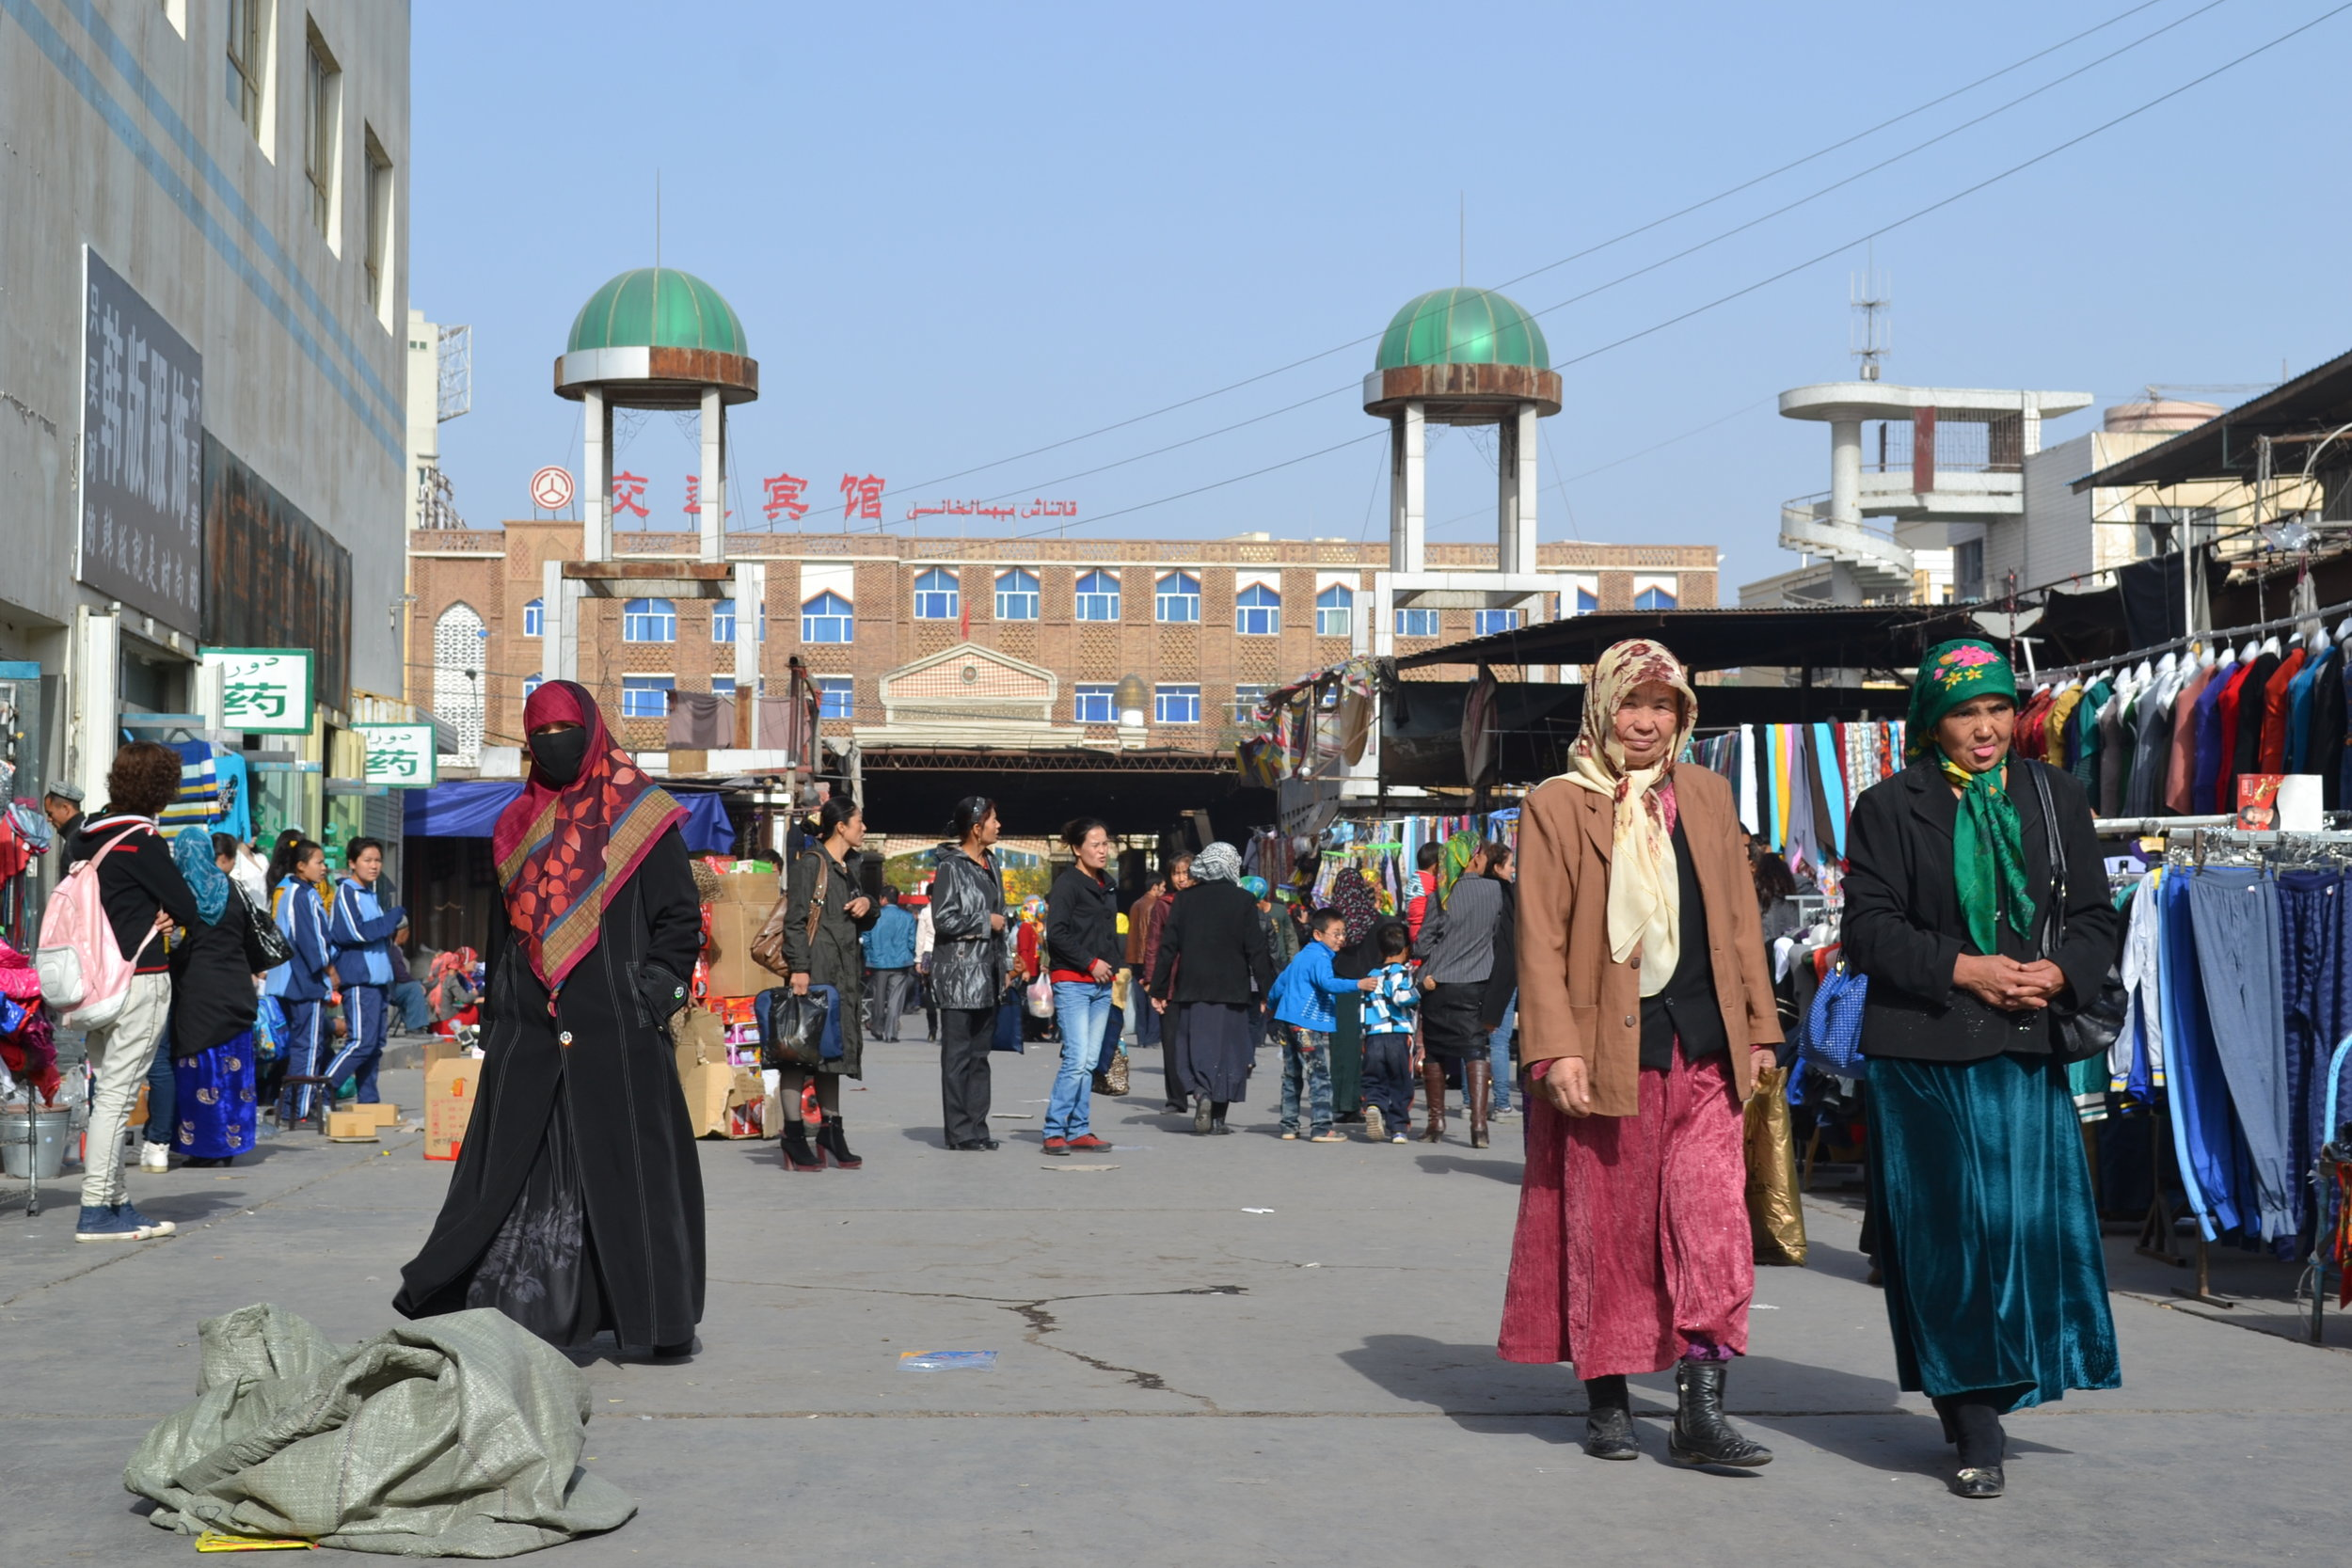 The Bazaar in Turfan